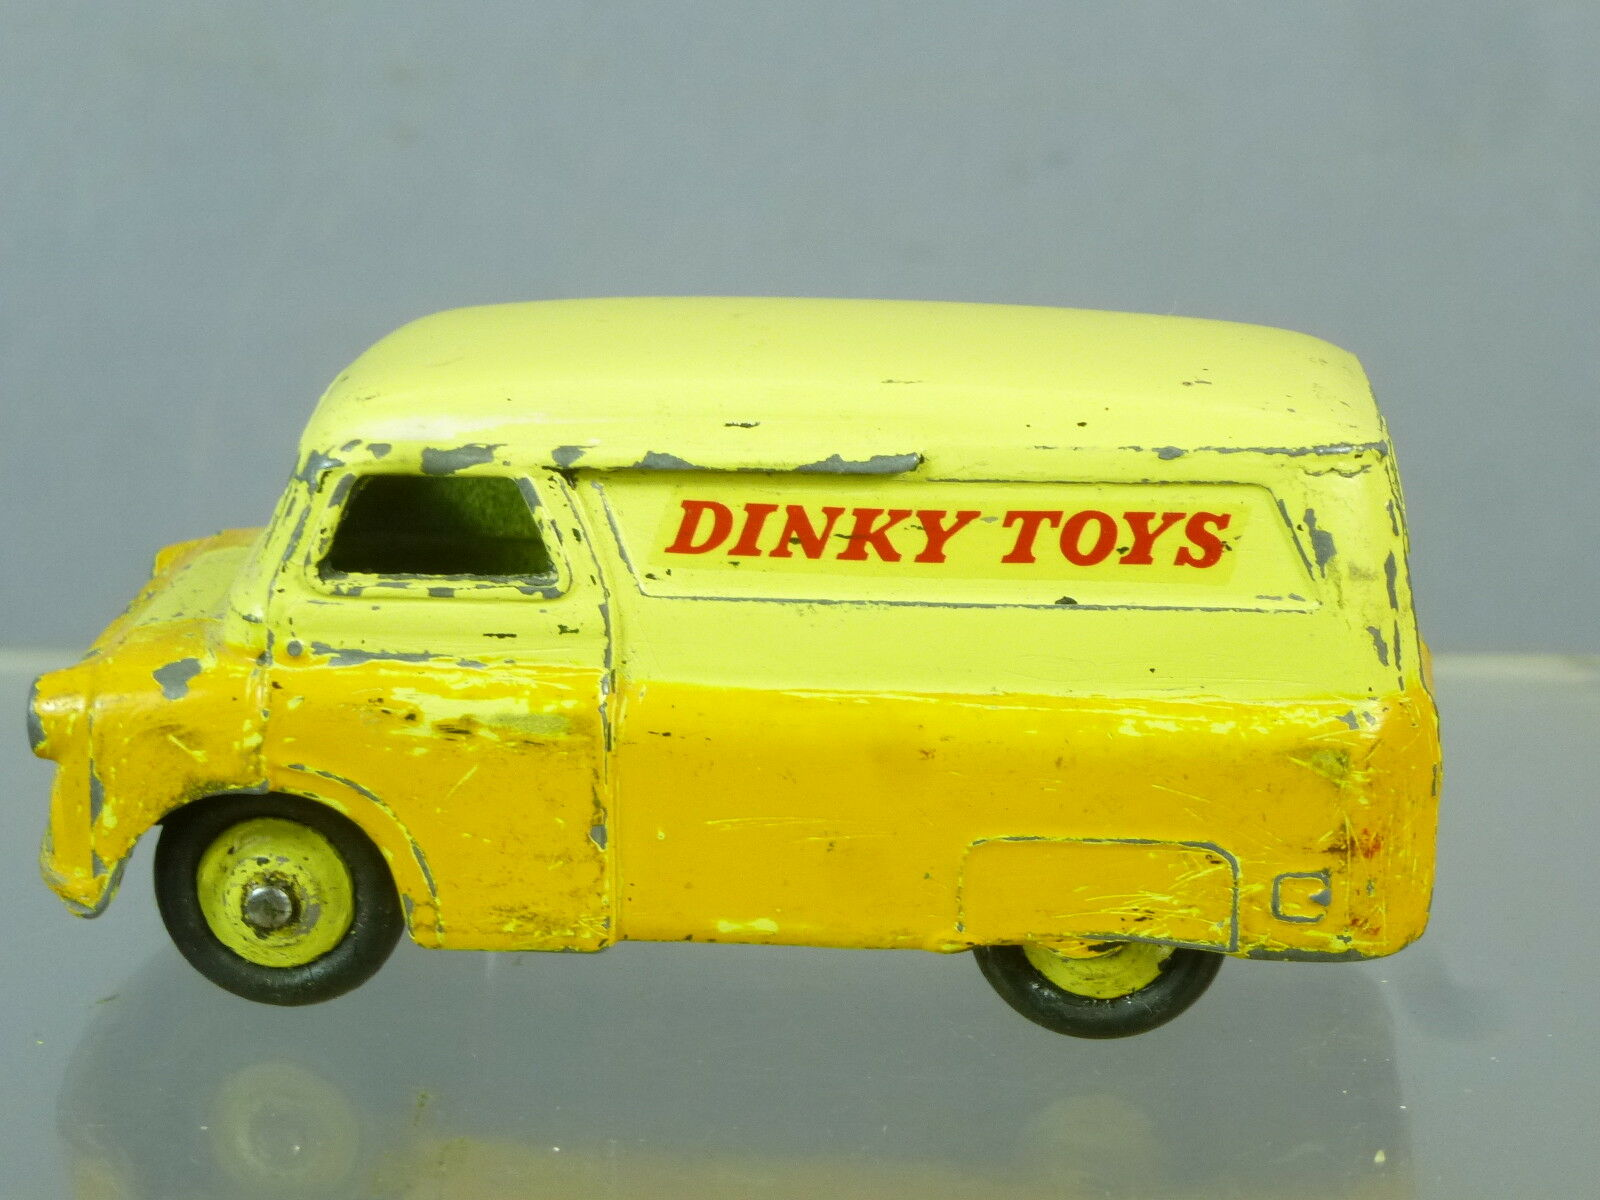 DINKY TOY'S MODEL  No.482 BEDFORD   DINKY TOYS      DELIVERY  VAN